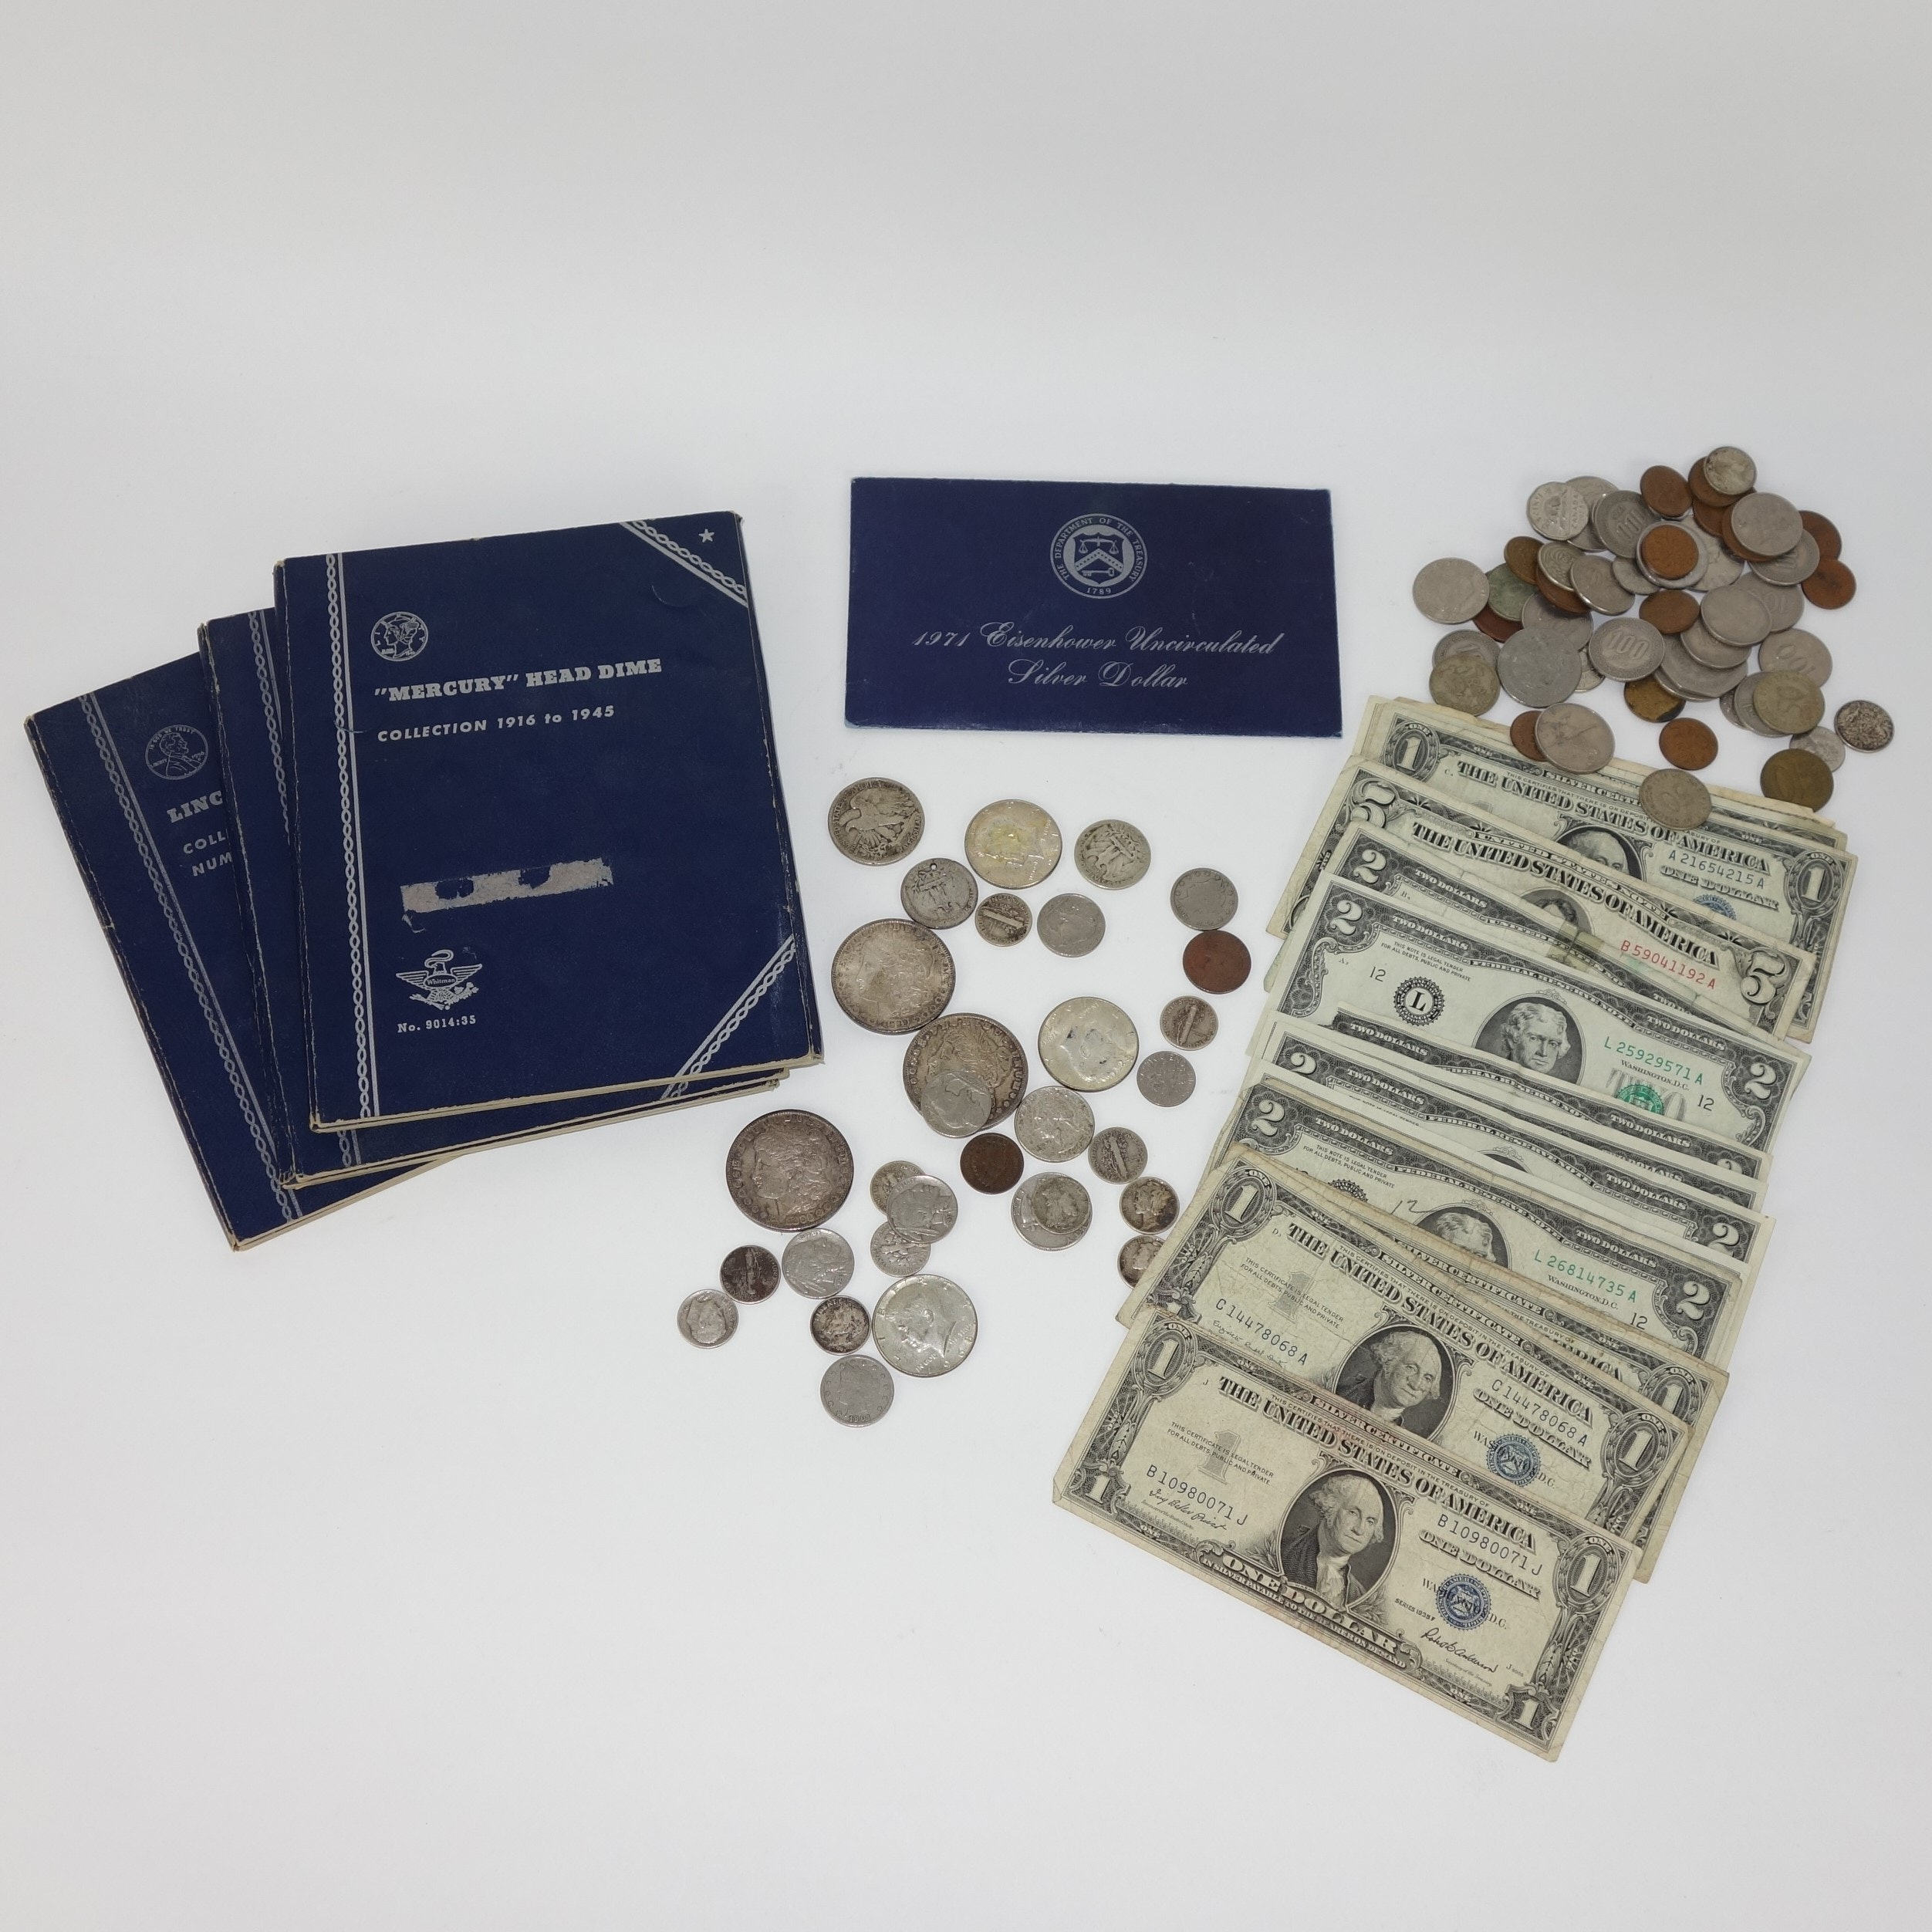 Mixed Silver Coin, Foreign Coin and Currency Collection